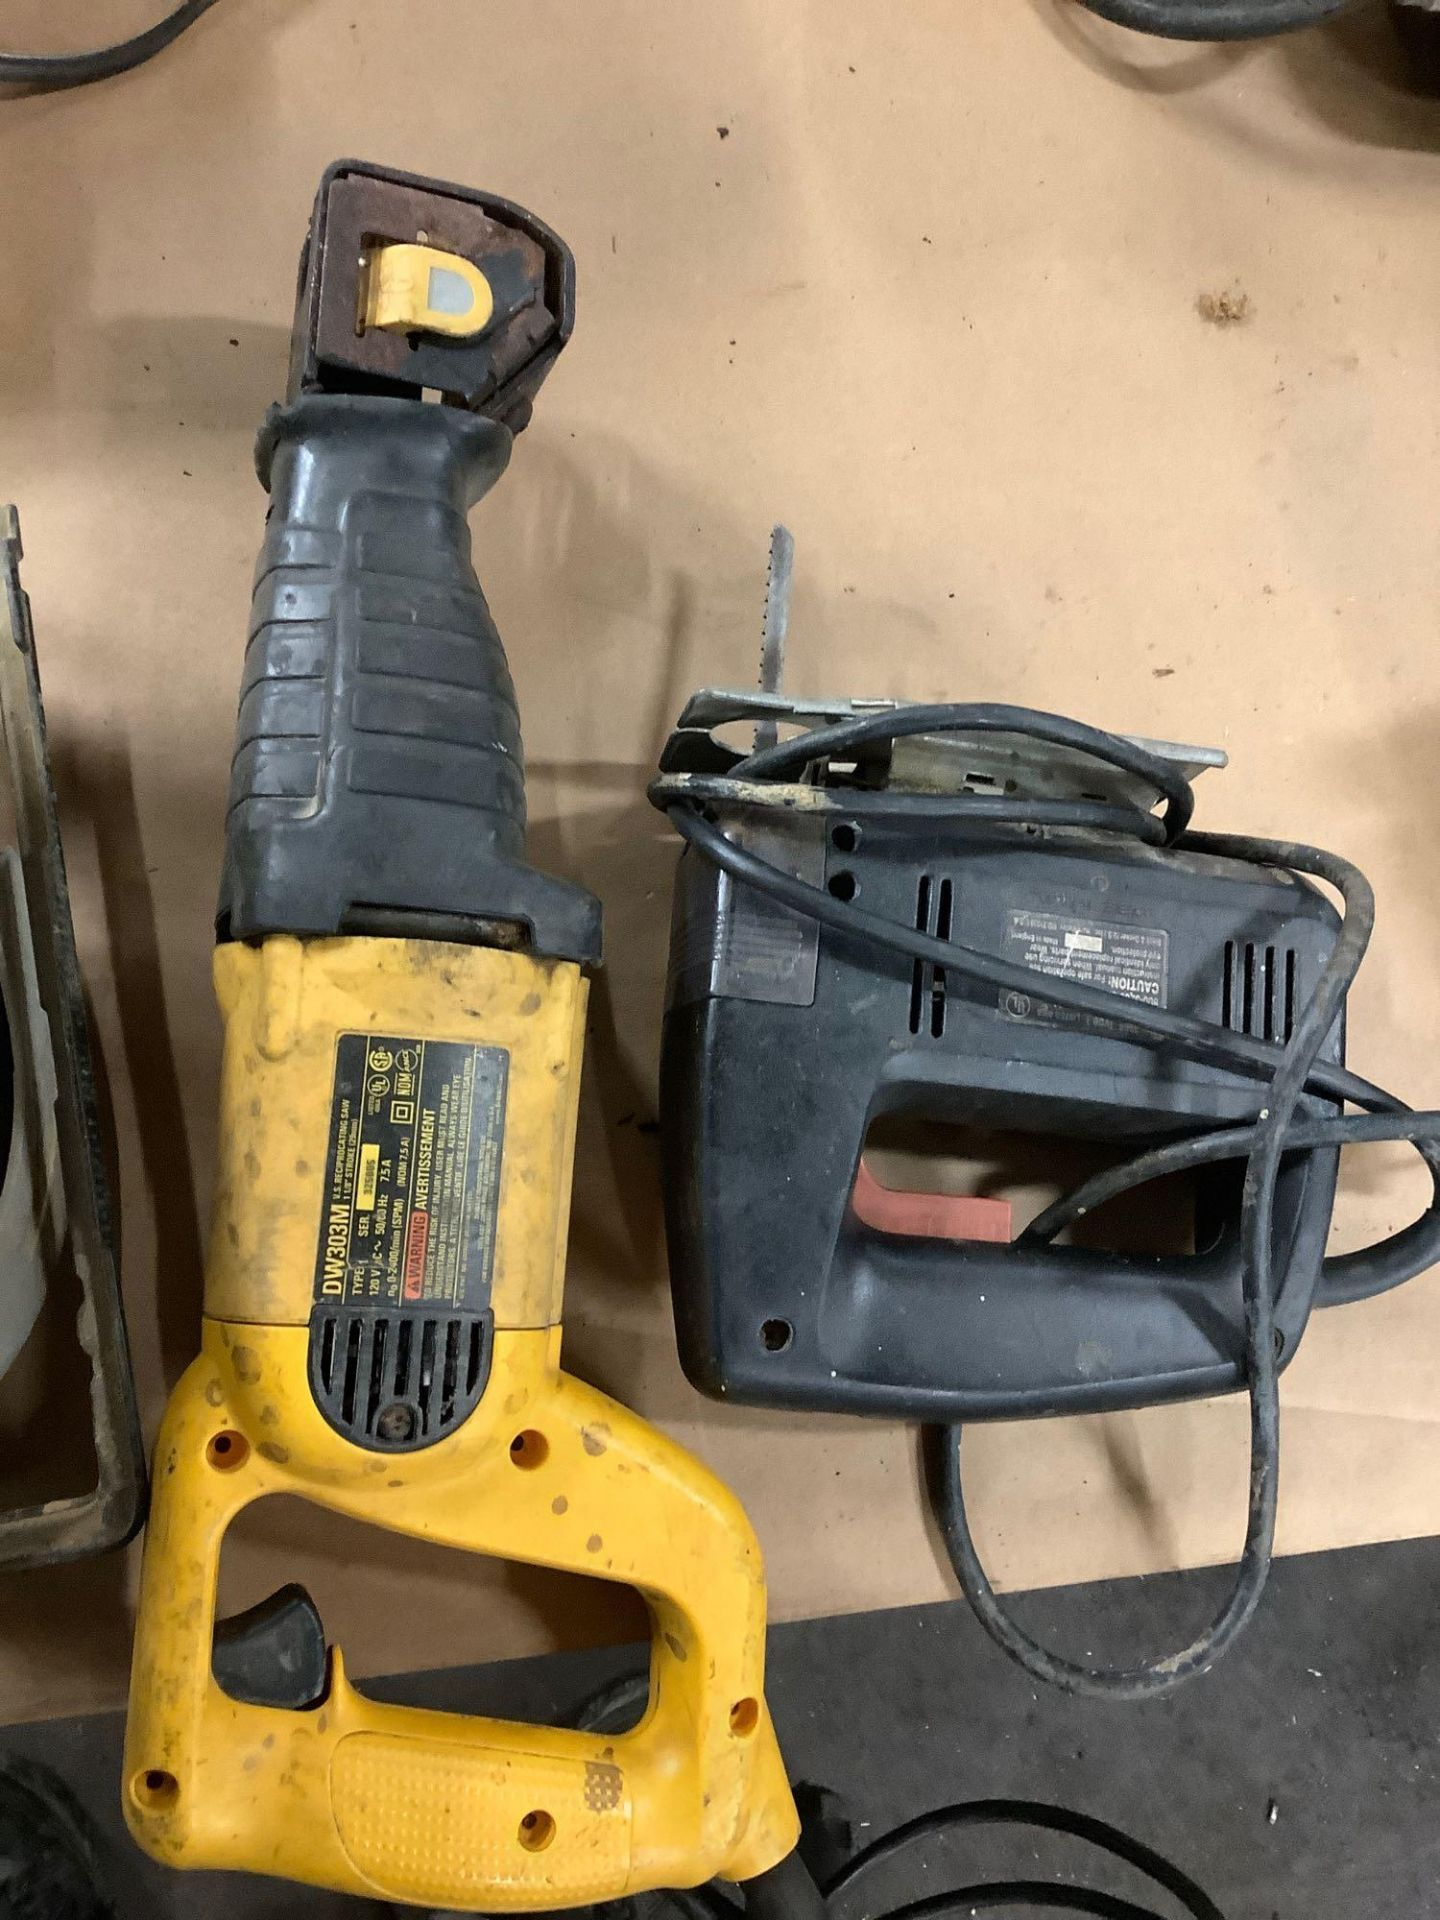 Lot of 3 Hand Saws - Image 3 of 5